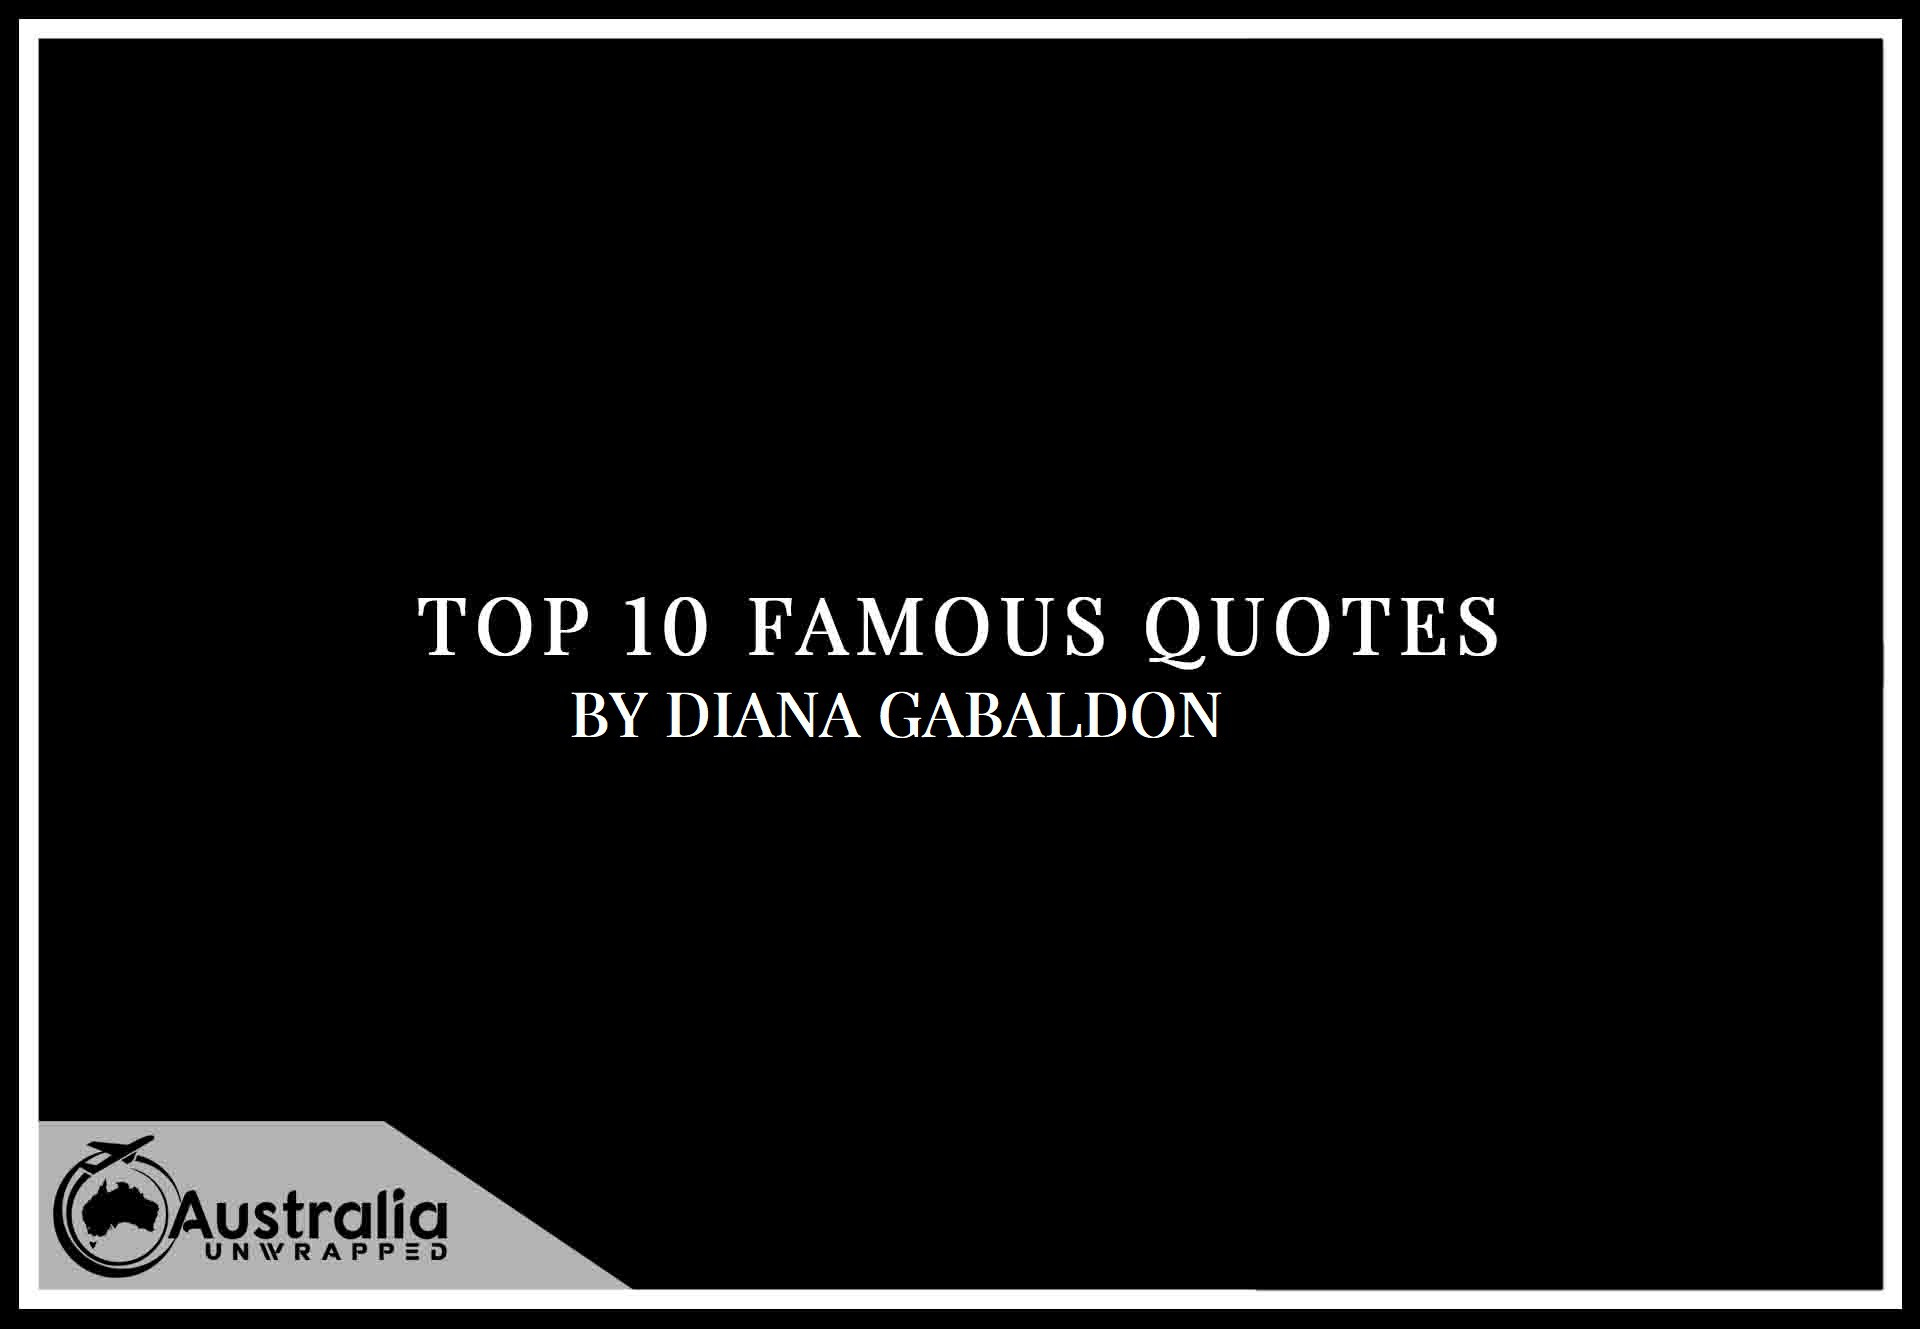 Top 10 Famous Quotes by Author Diana Gabaldon